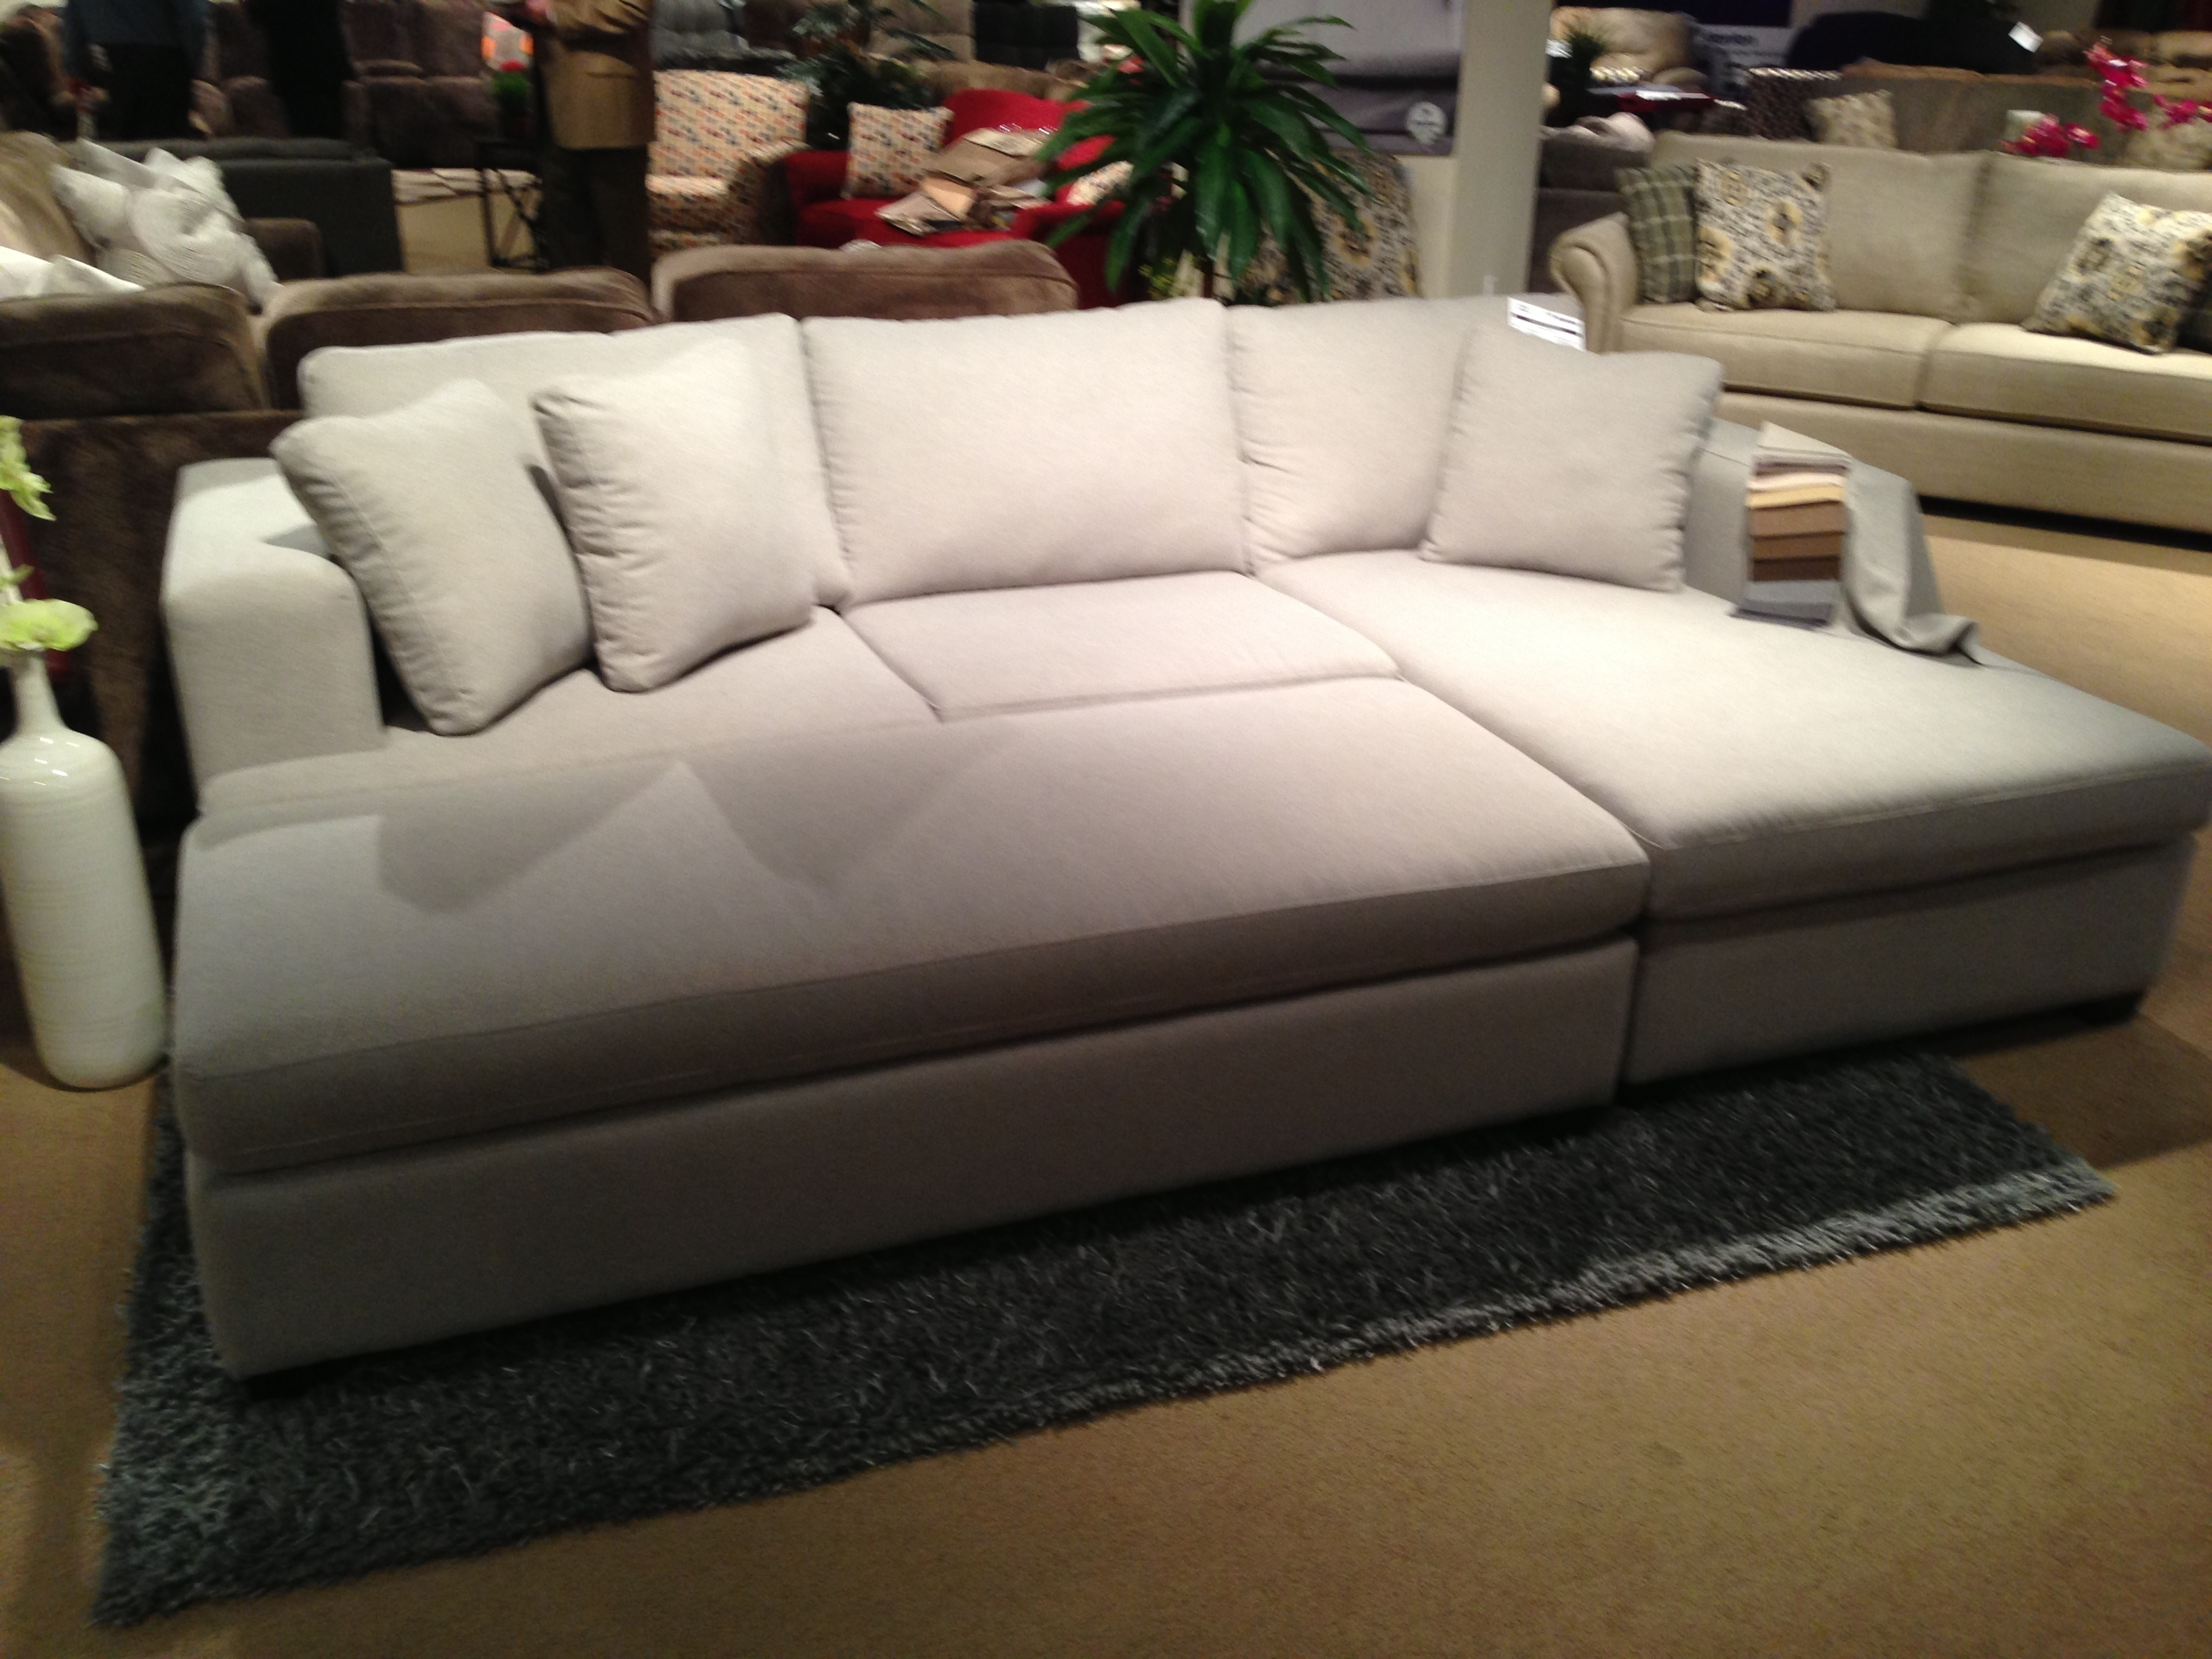 Sectional | Tweetalk With Regard To Sectionals With Ottoman (View 14 of 15)